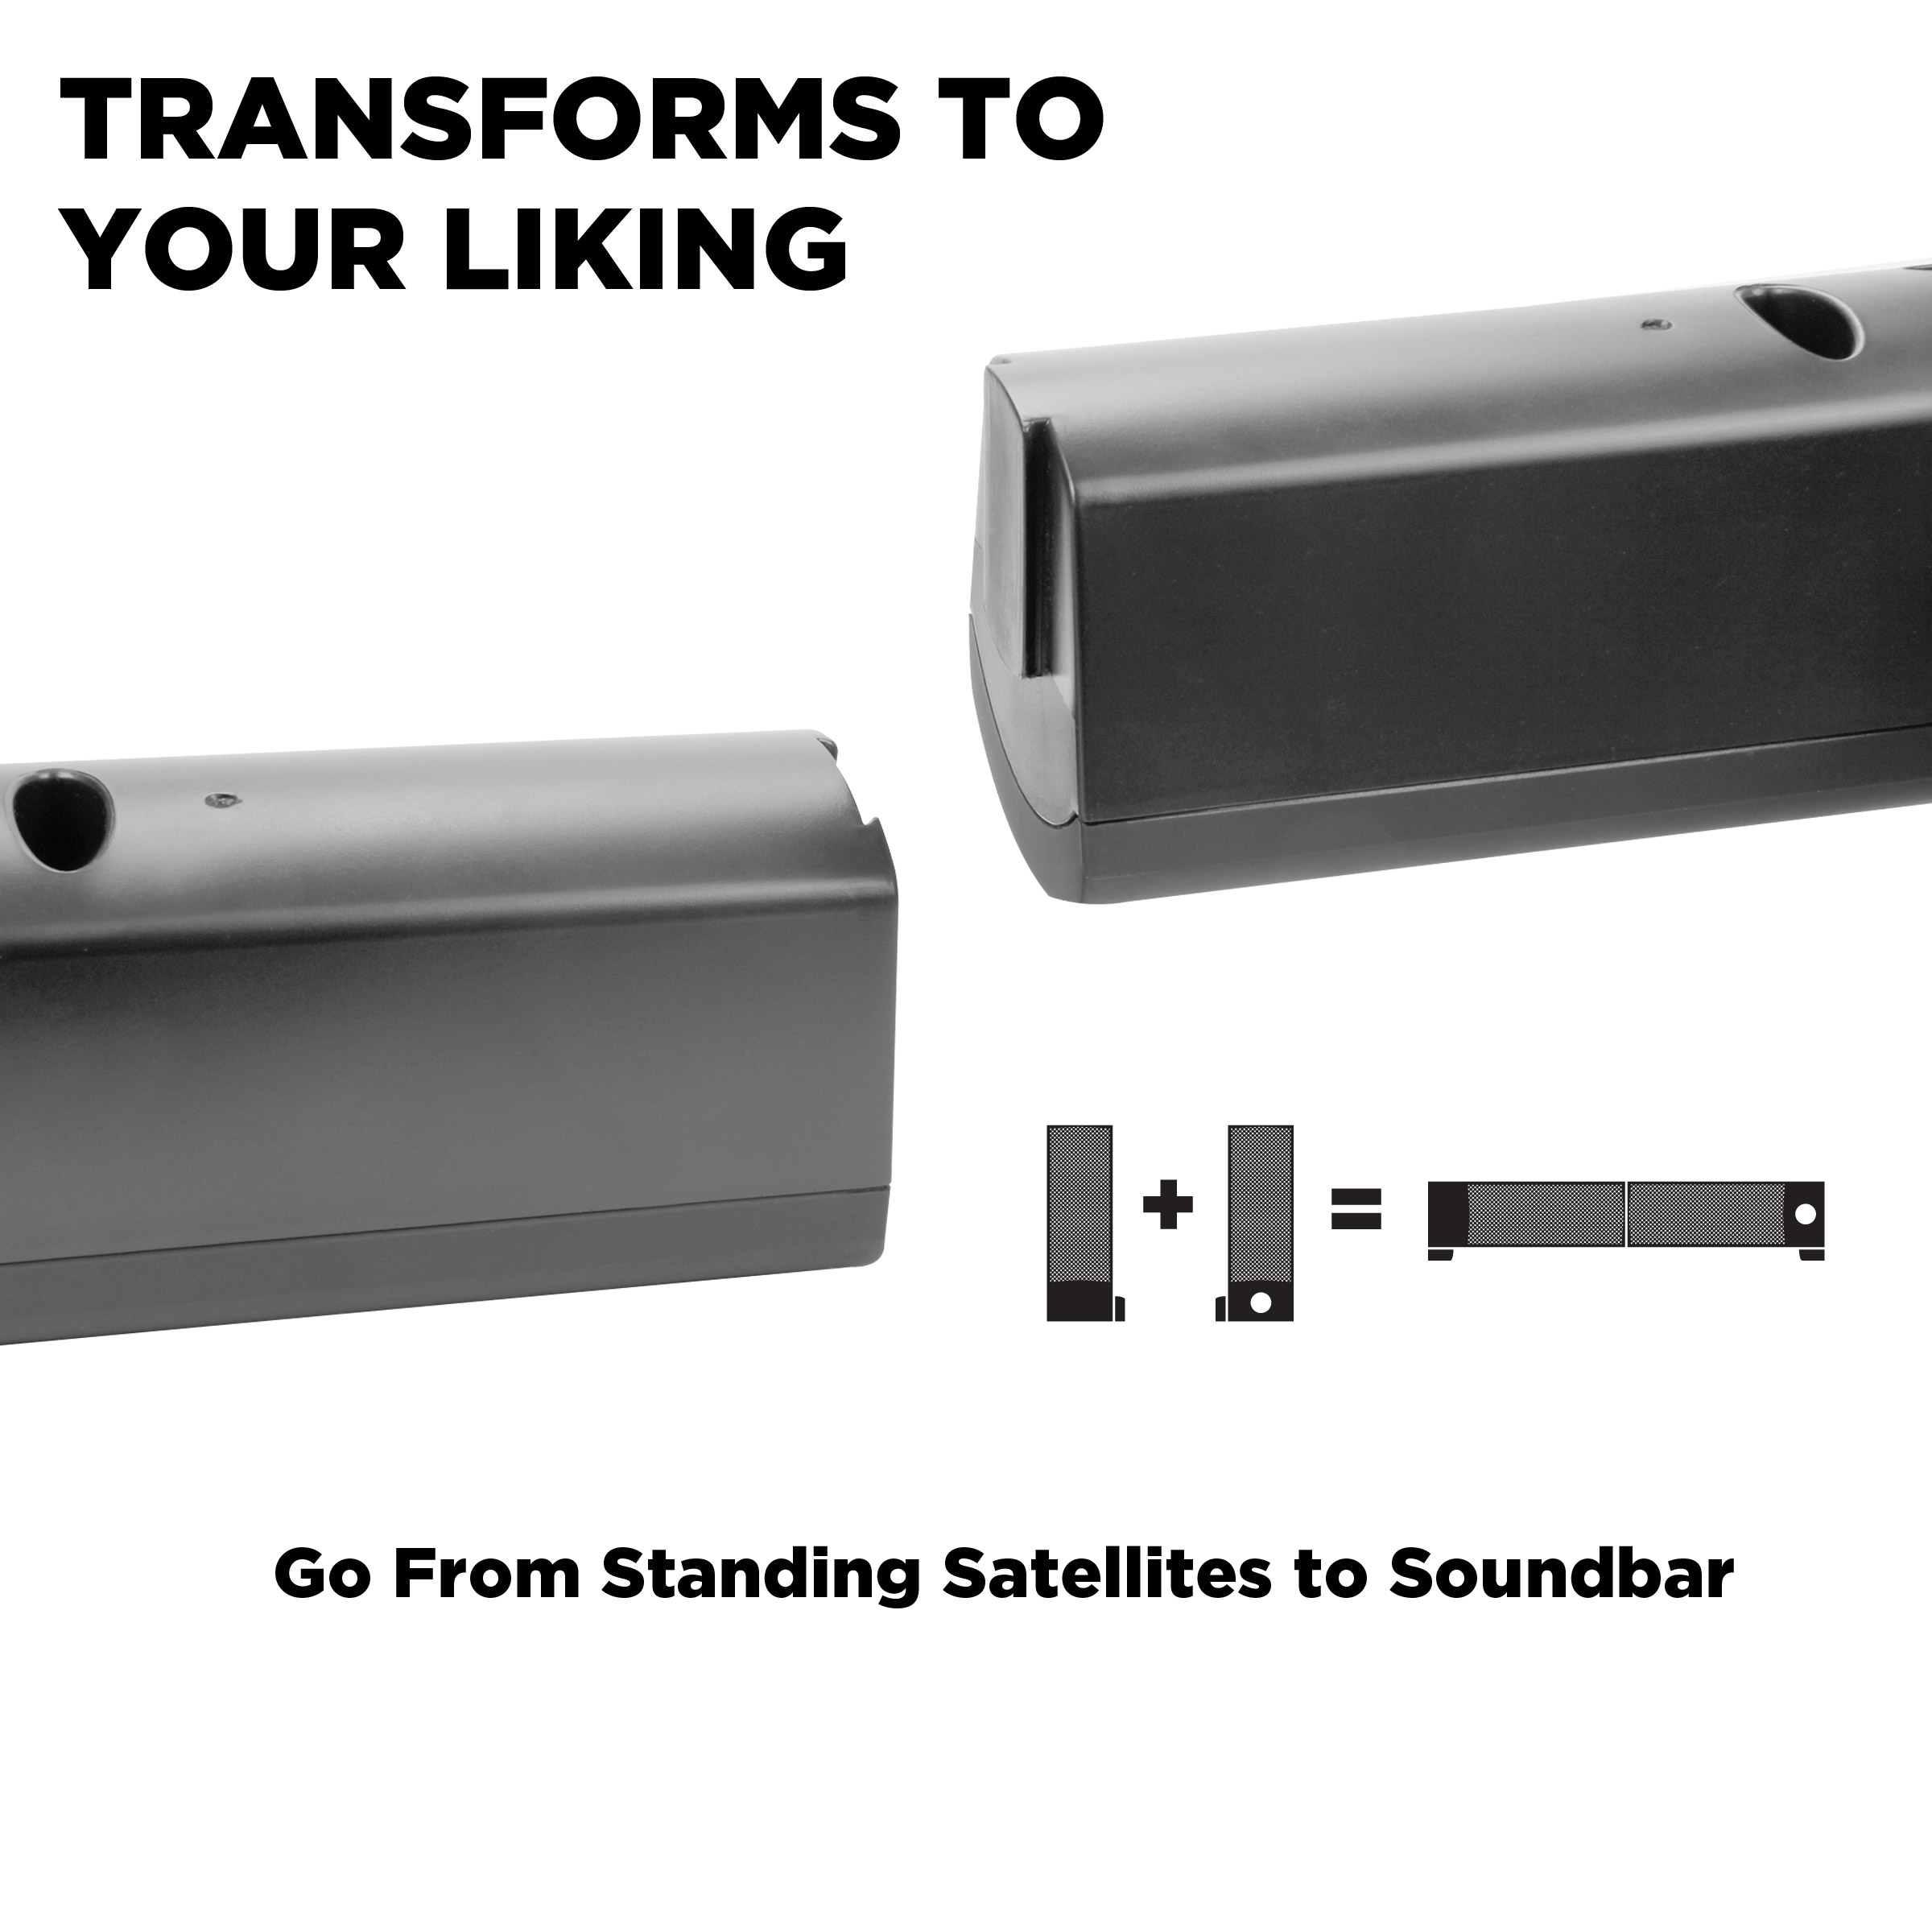 Usb Powered 21 Computer Speaker Sound Bar And Wired Subwoofer Difference Between Series Parallel Wiring Subwoofers Gogroove Blackout Sonaverse Utr Pc Soundbar With 22w Peak Power Aux Input